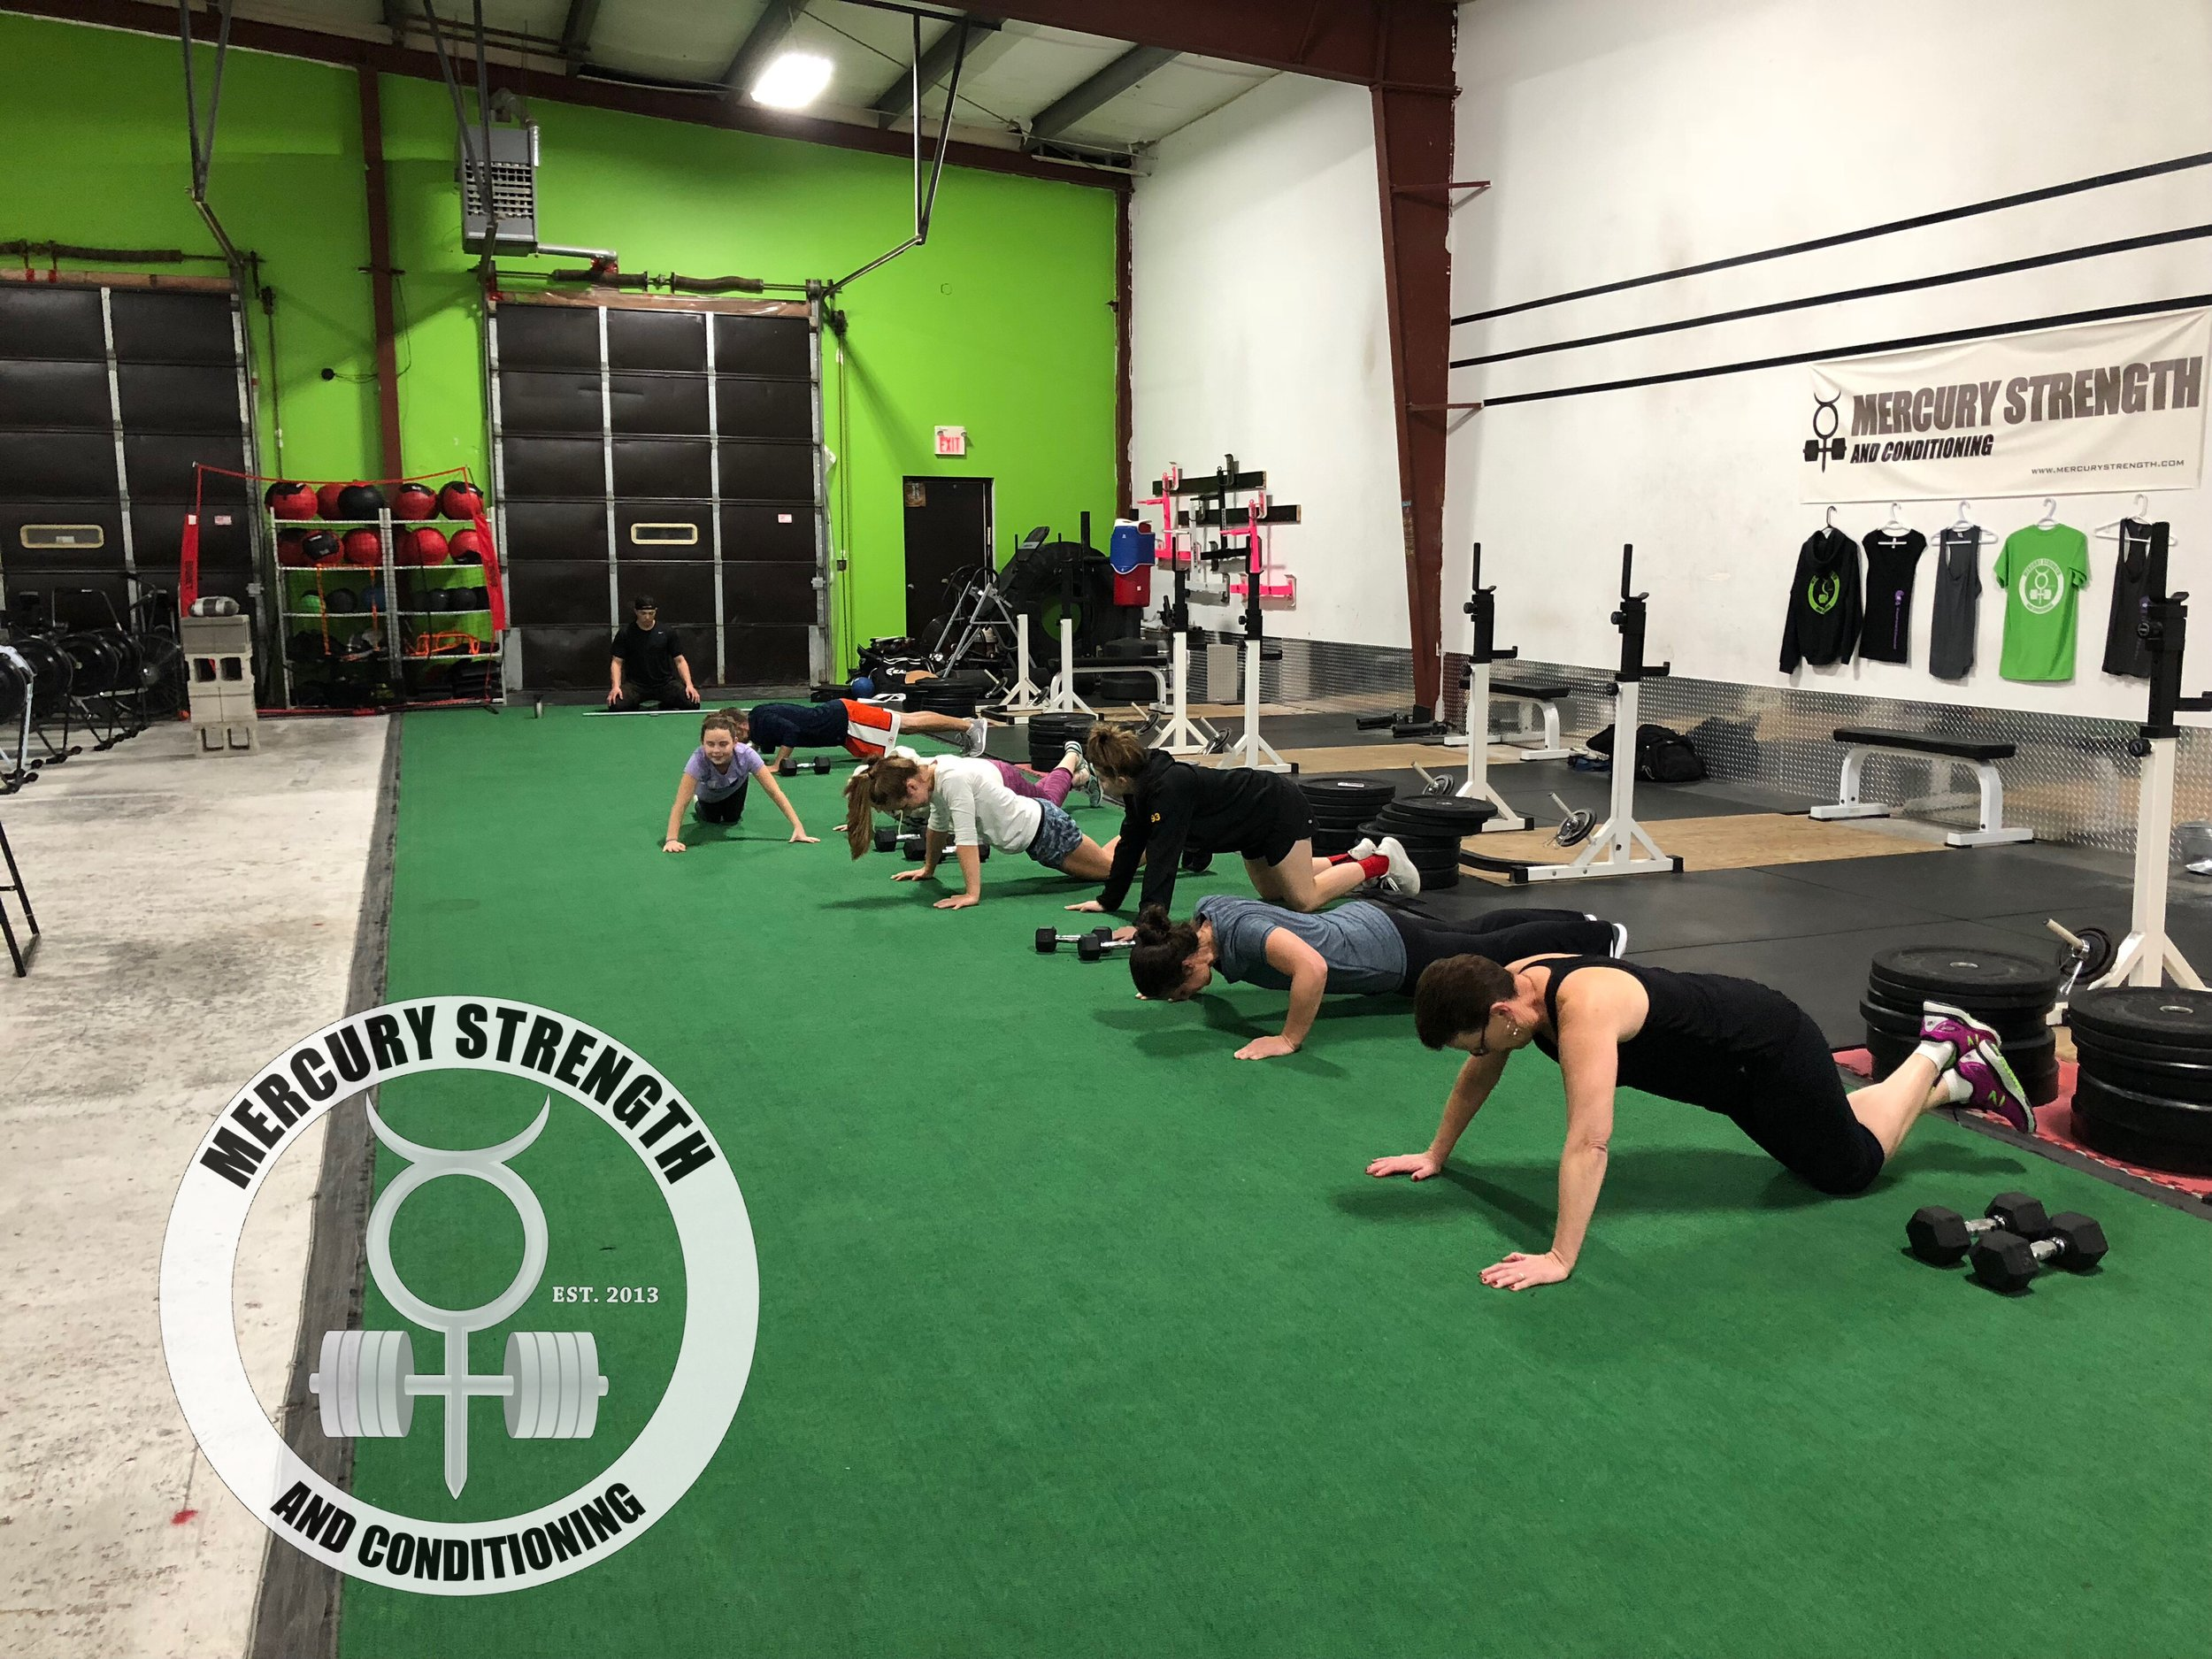 As many push-ups as possible in 3:20… How many can you do?